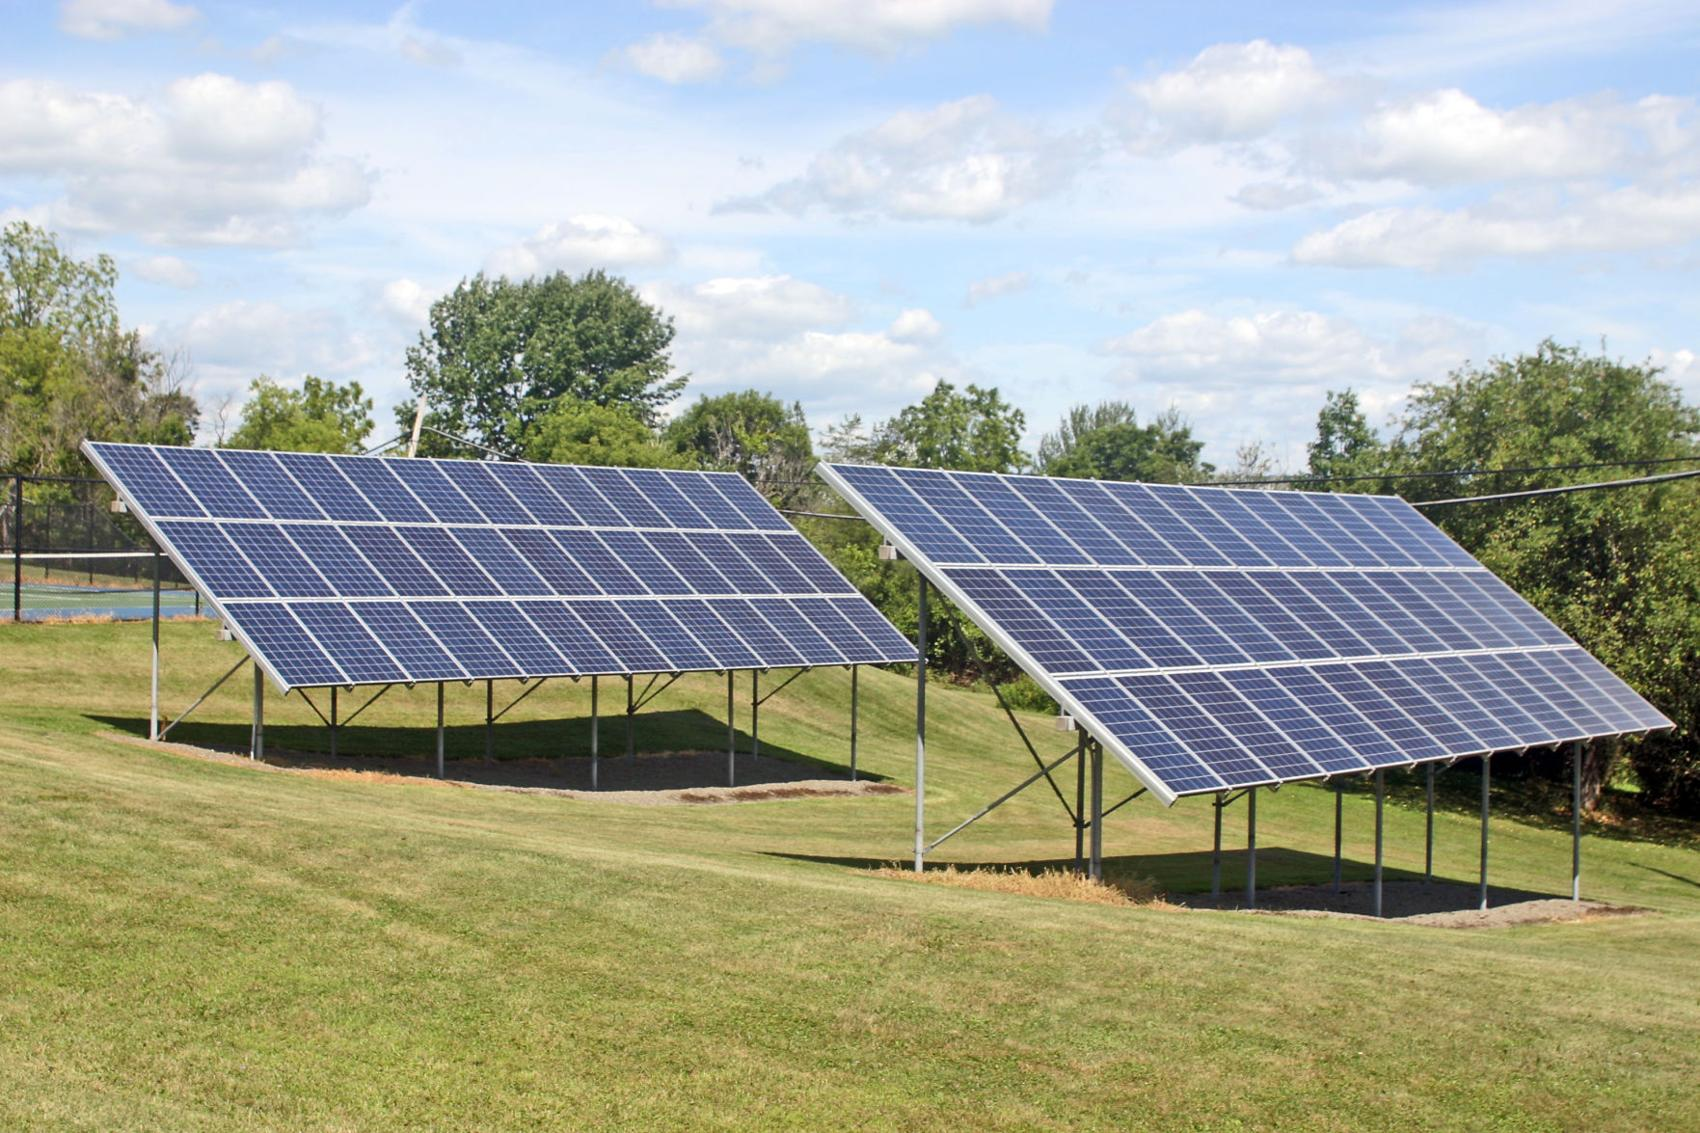 Lansing aims to amend wind, solar laws as eco-friendly development becomes more common